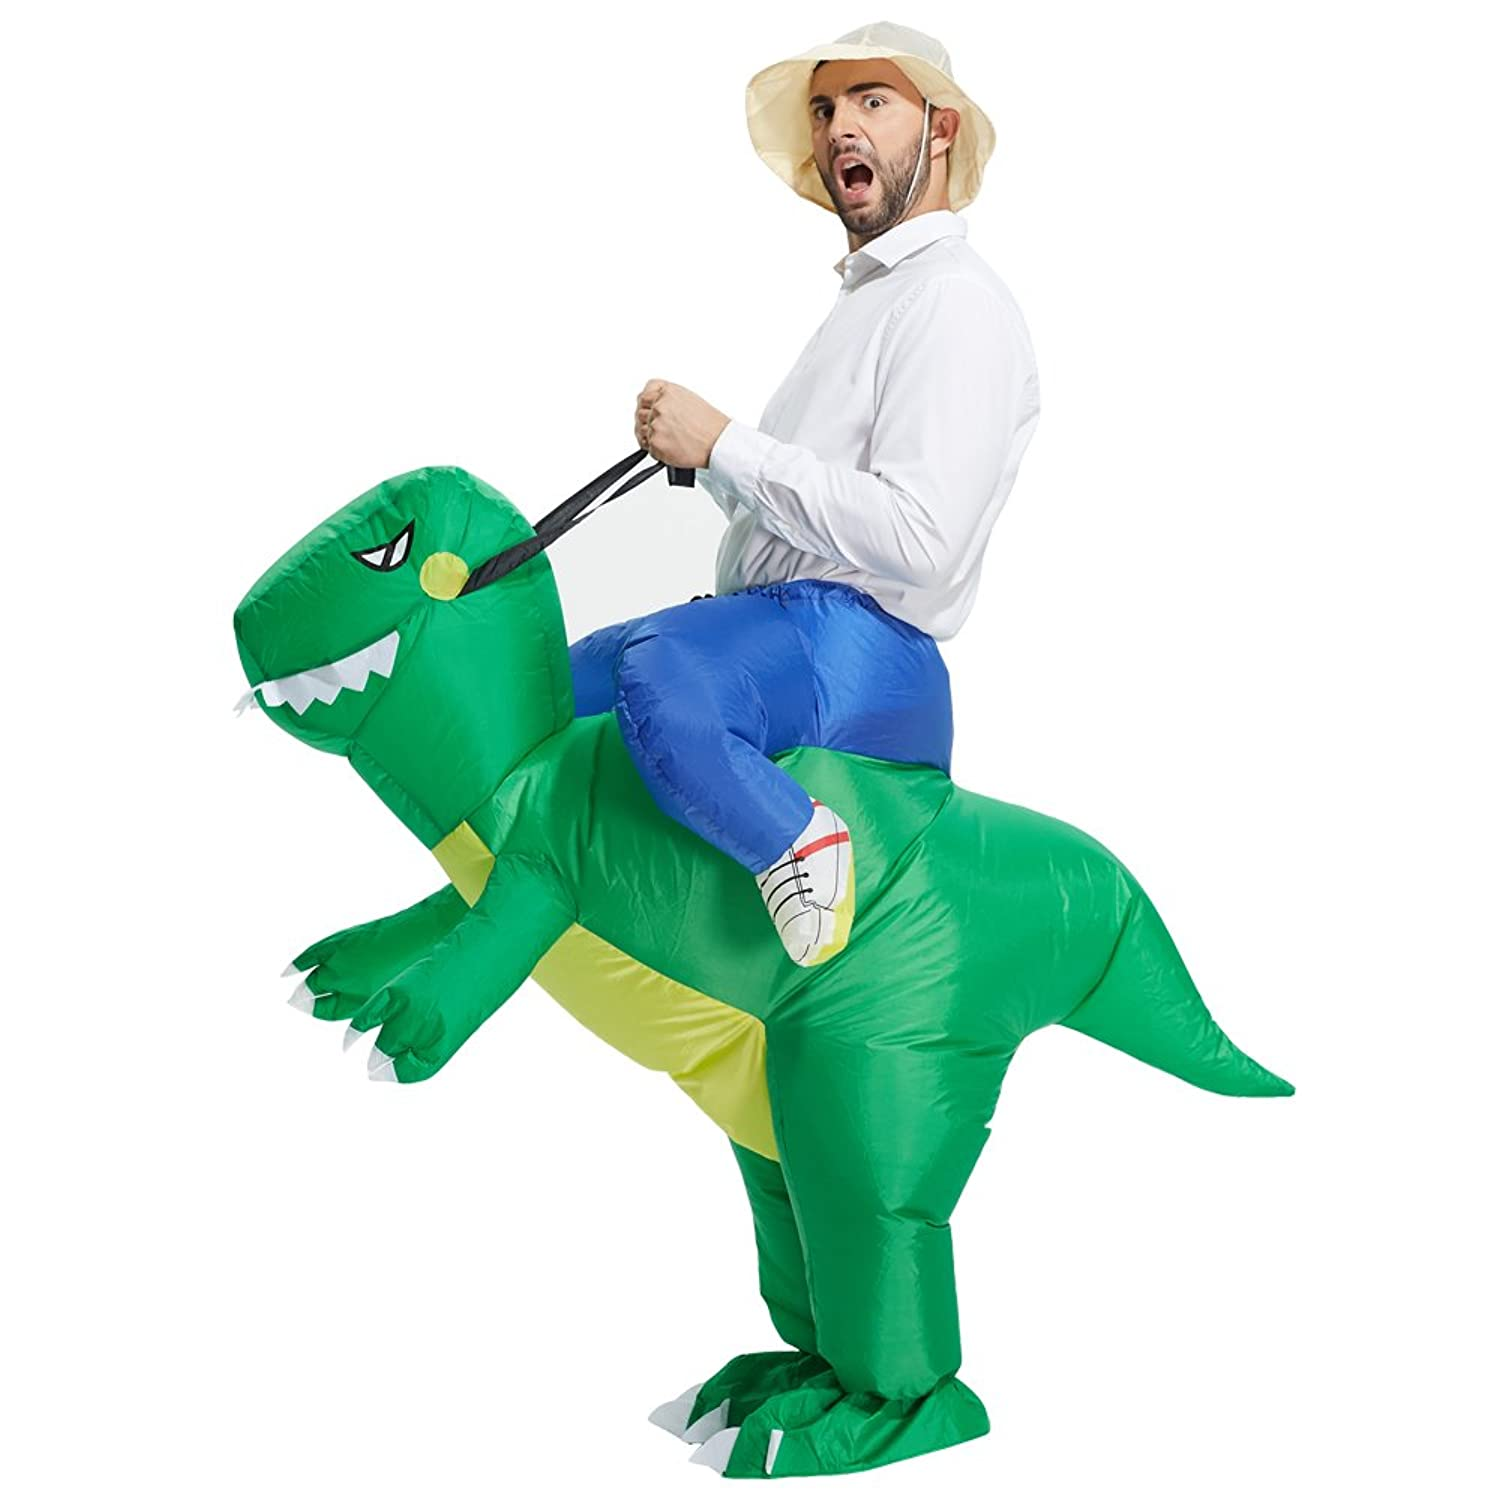 amazoncom toloco inflatable dinosaur t rex costume inflatable costumes for adults halloween costume blow up costume green clothing